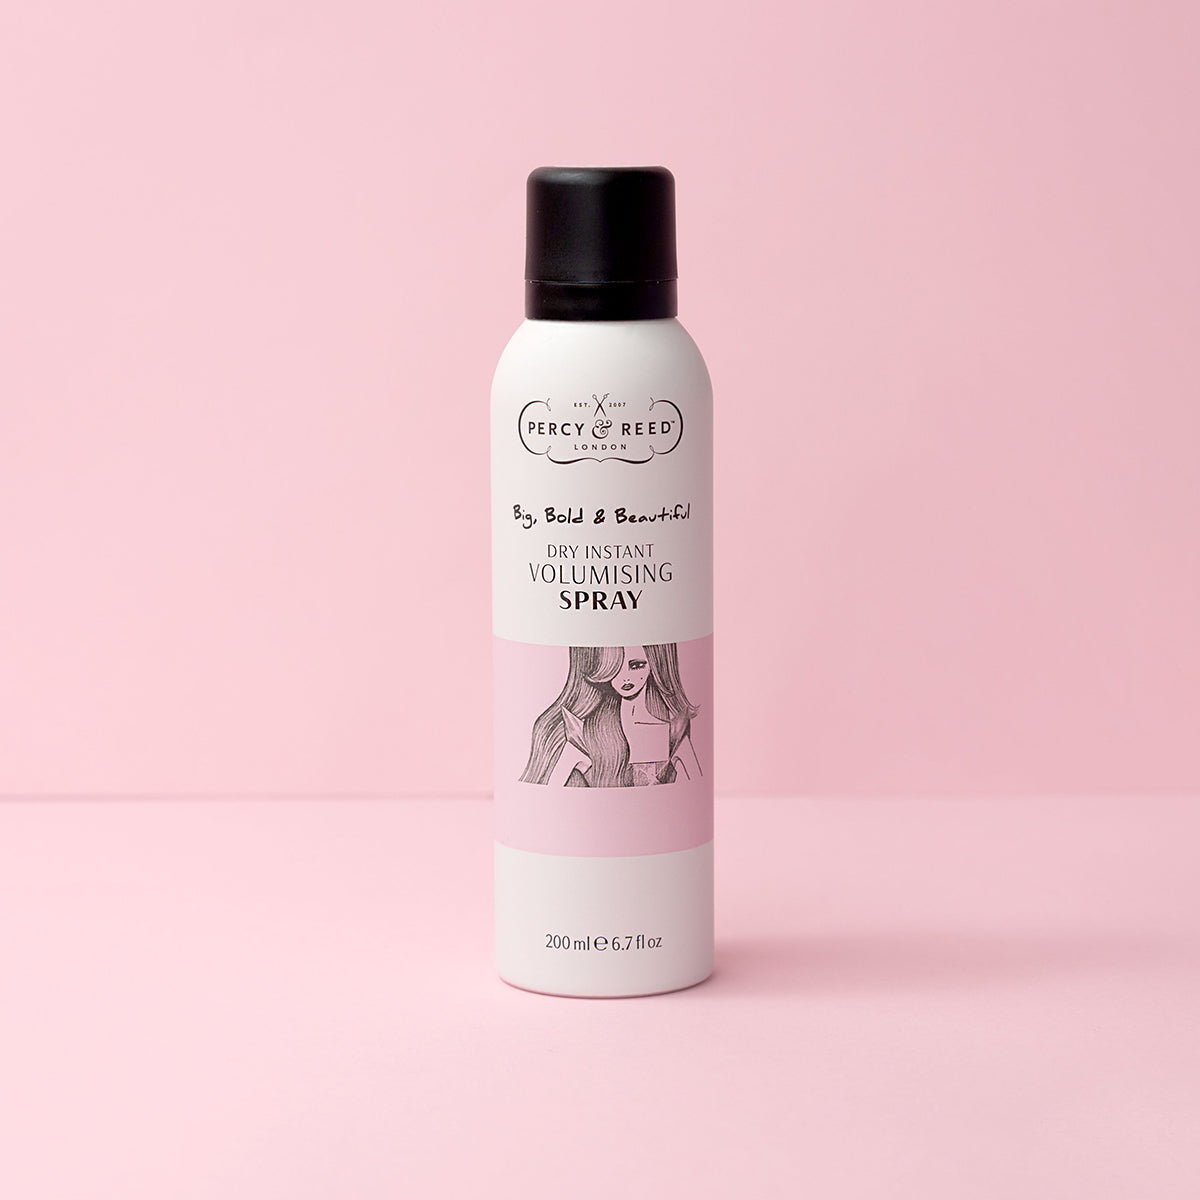 Percy & Reed Big Bold & Beautiful Dry Instant Volumising Spray